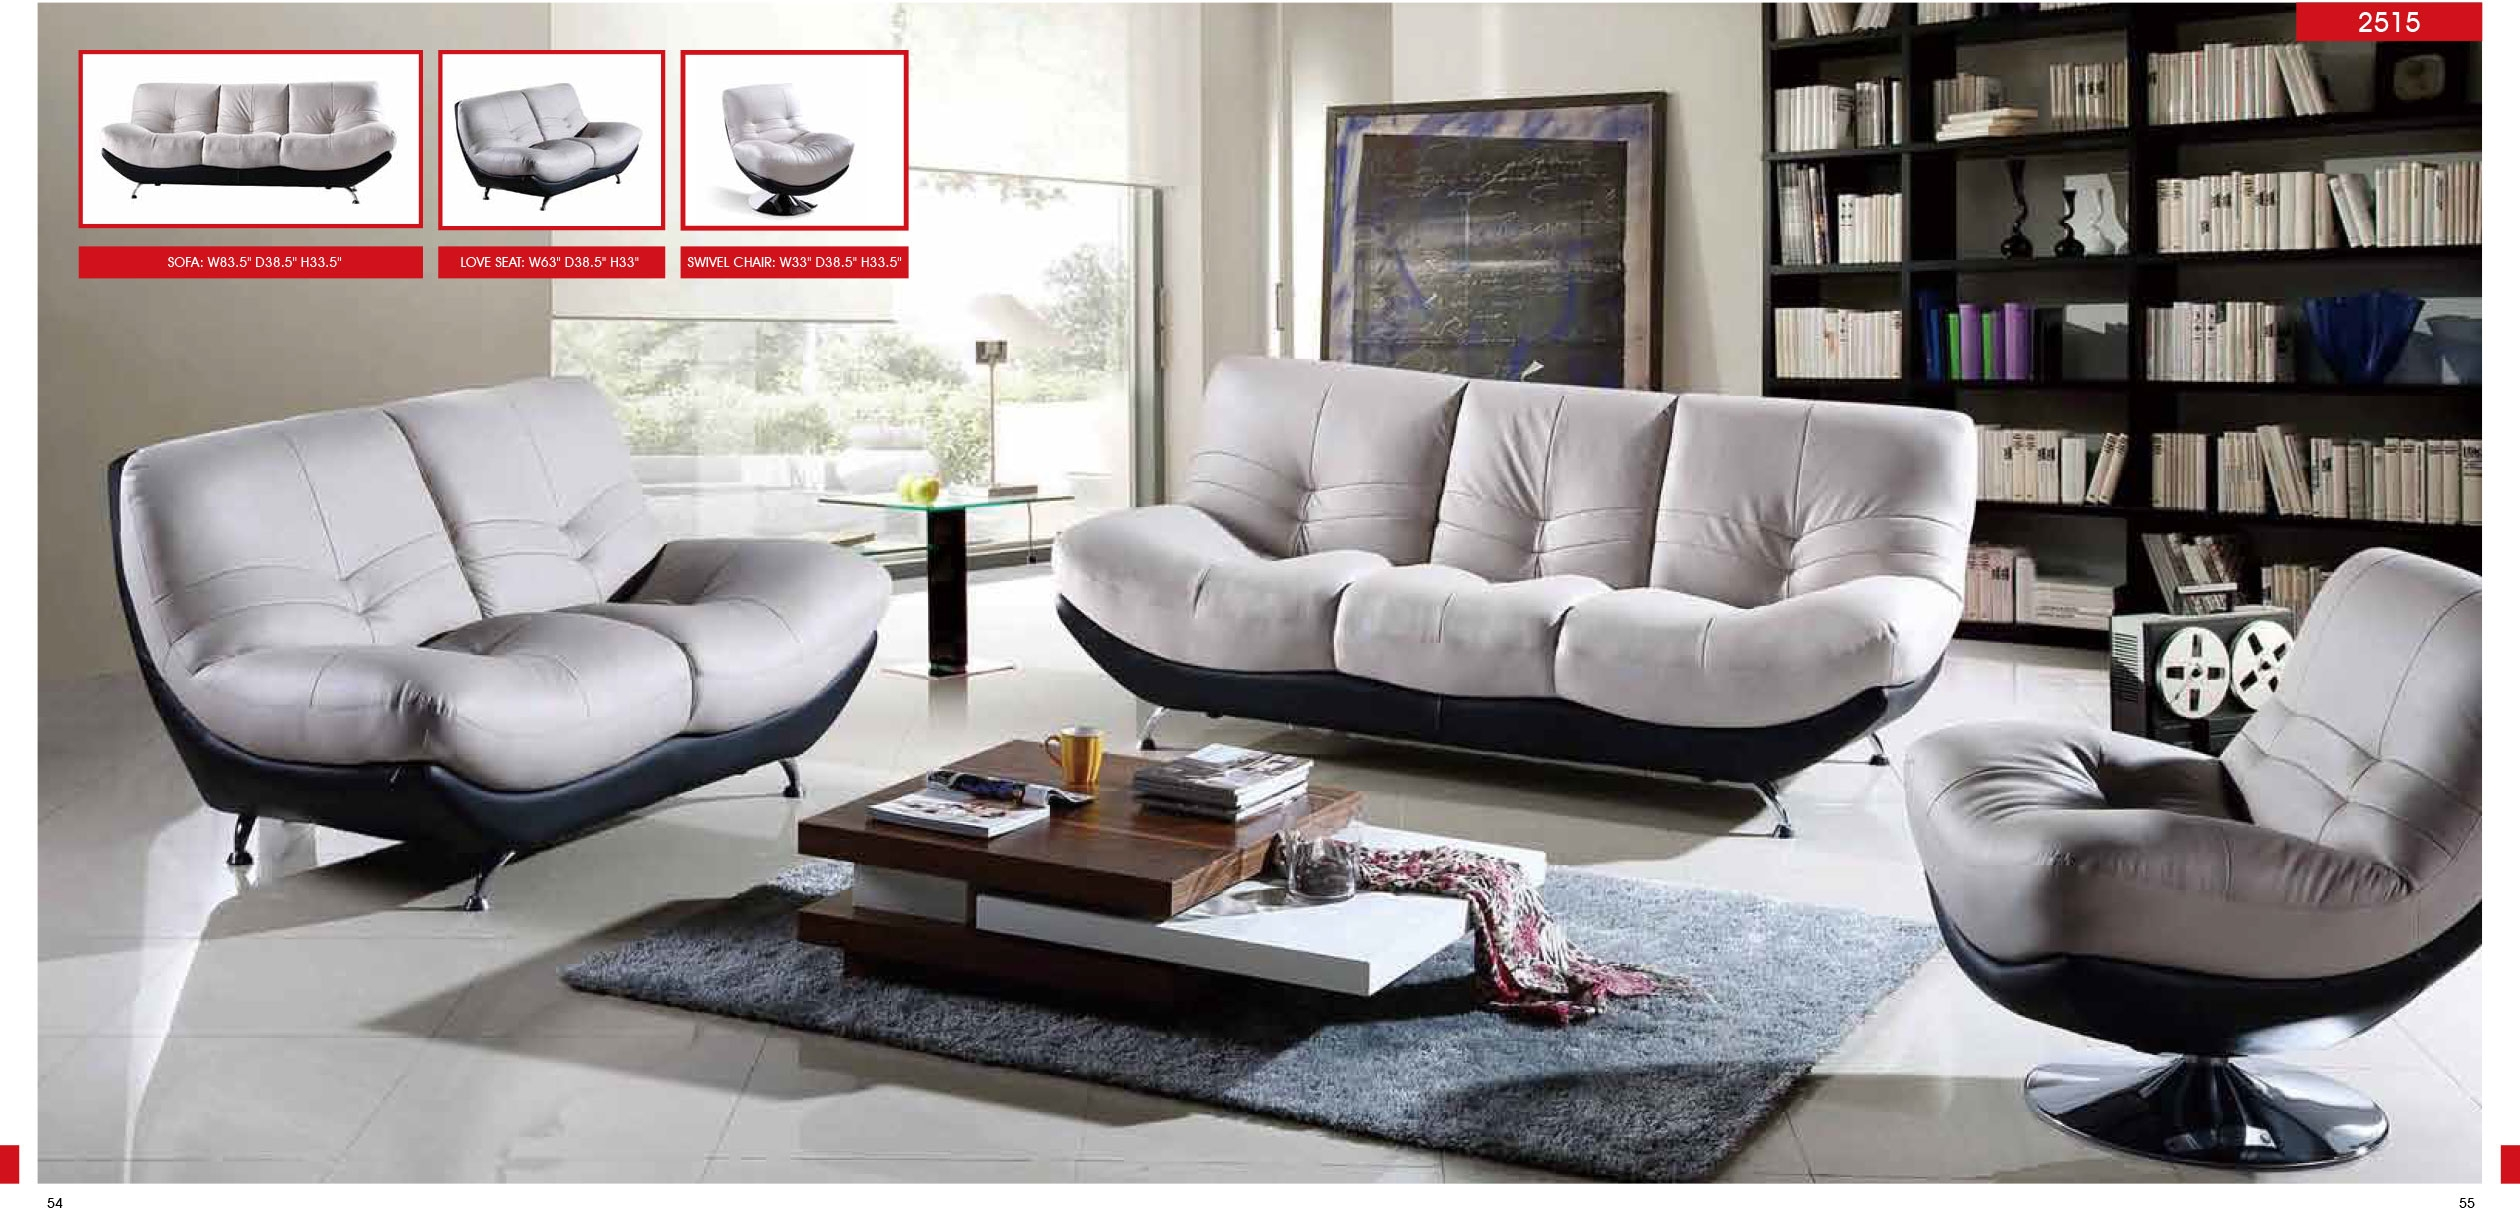 Living Room Modern Sets Houston Stores For Sale Cheap Leather With Living Room Sofa Chairs (Image 5 of 15)